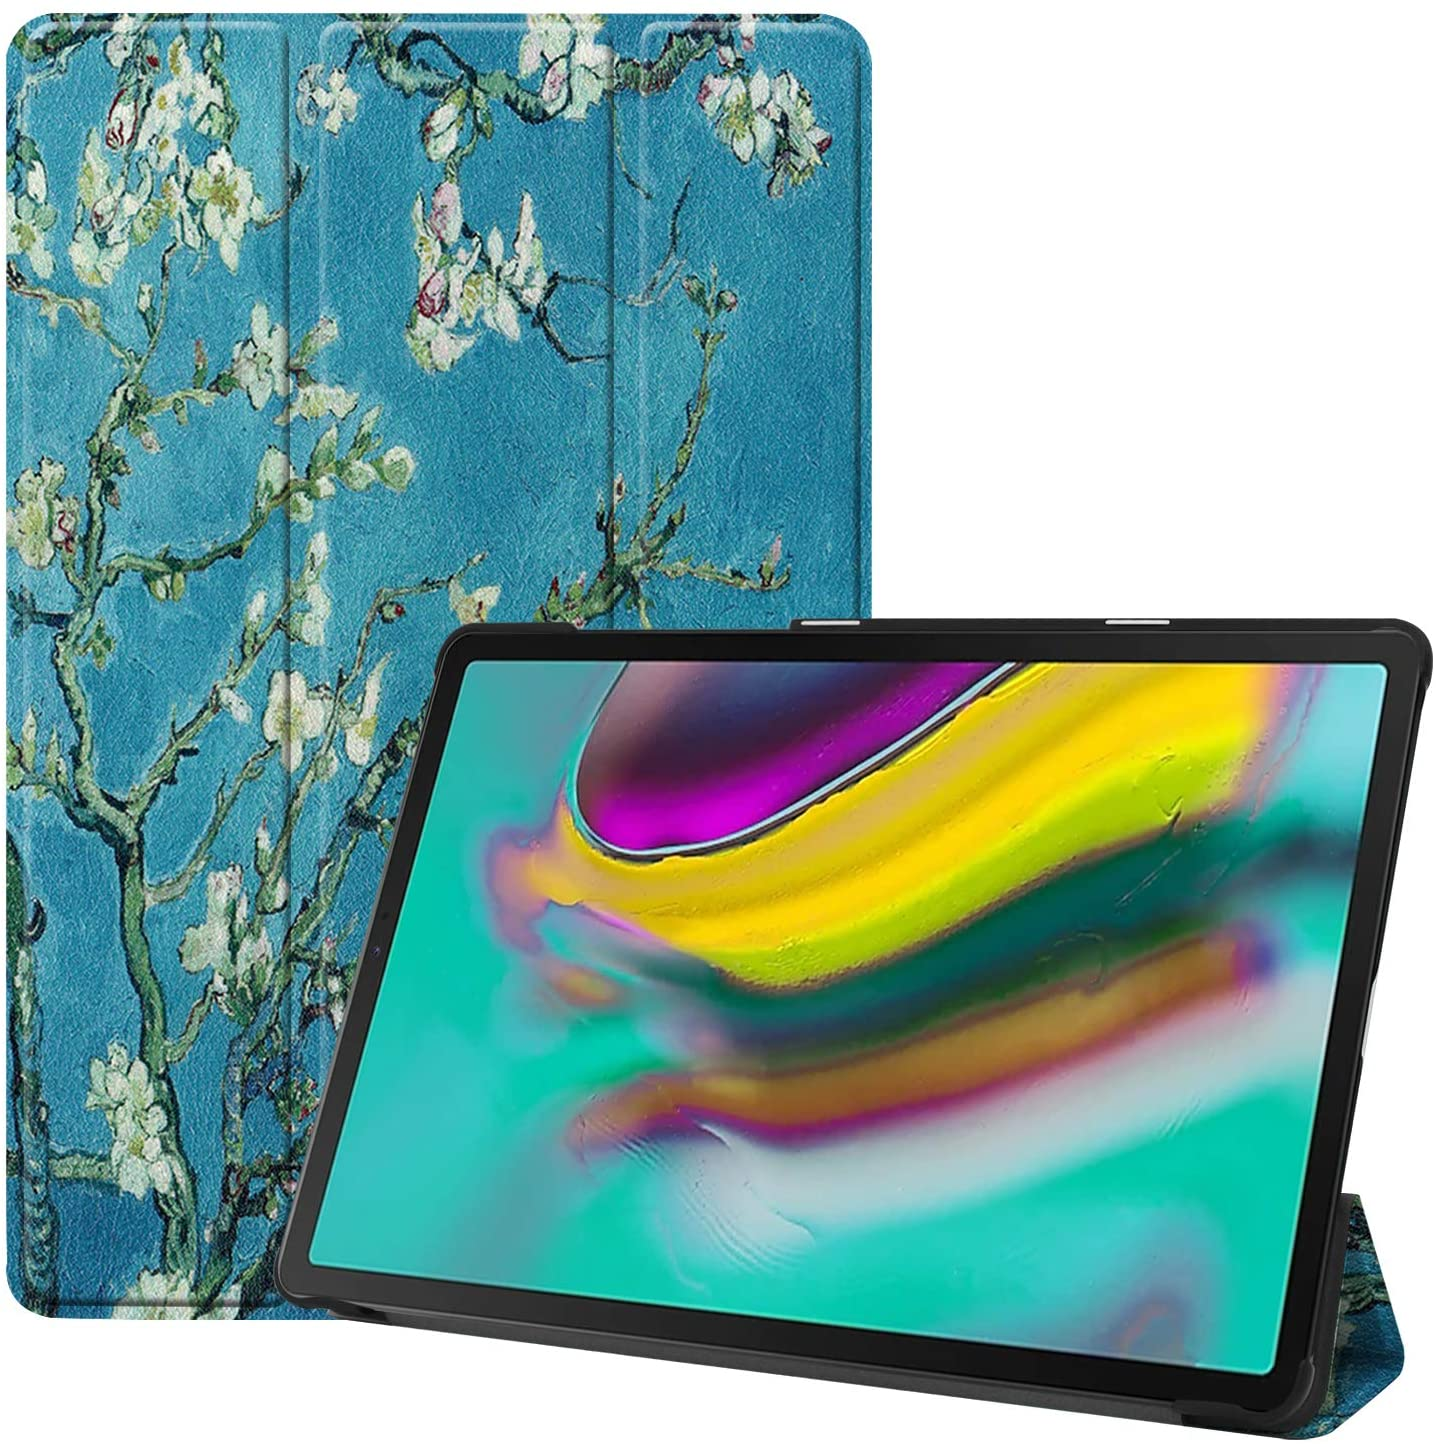 Epicgadget Case for Galaxy Tab S5e SM-T720/T725, Slim Tri-Fold Folding Shell Auto Wake/Sleep Smart Cover for Samsung Galaxy Tab S5e 10.5 Display Tablet Released in 2019 (Almond Blossom)